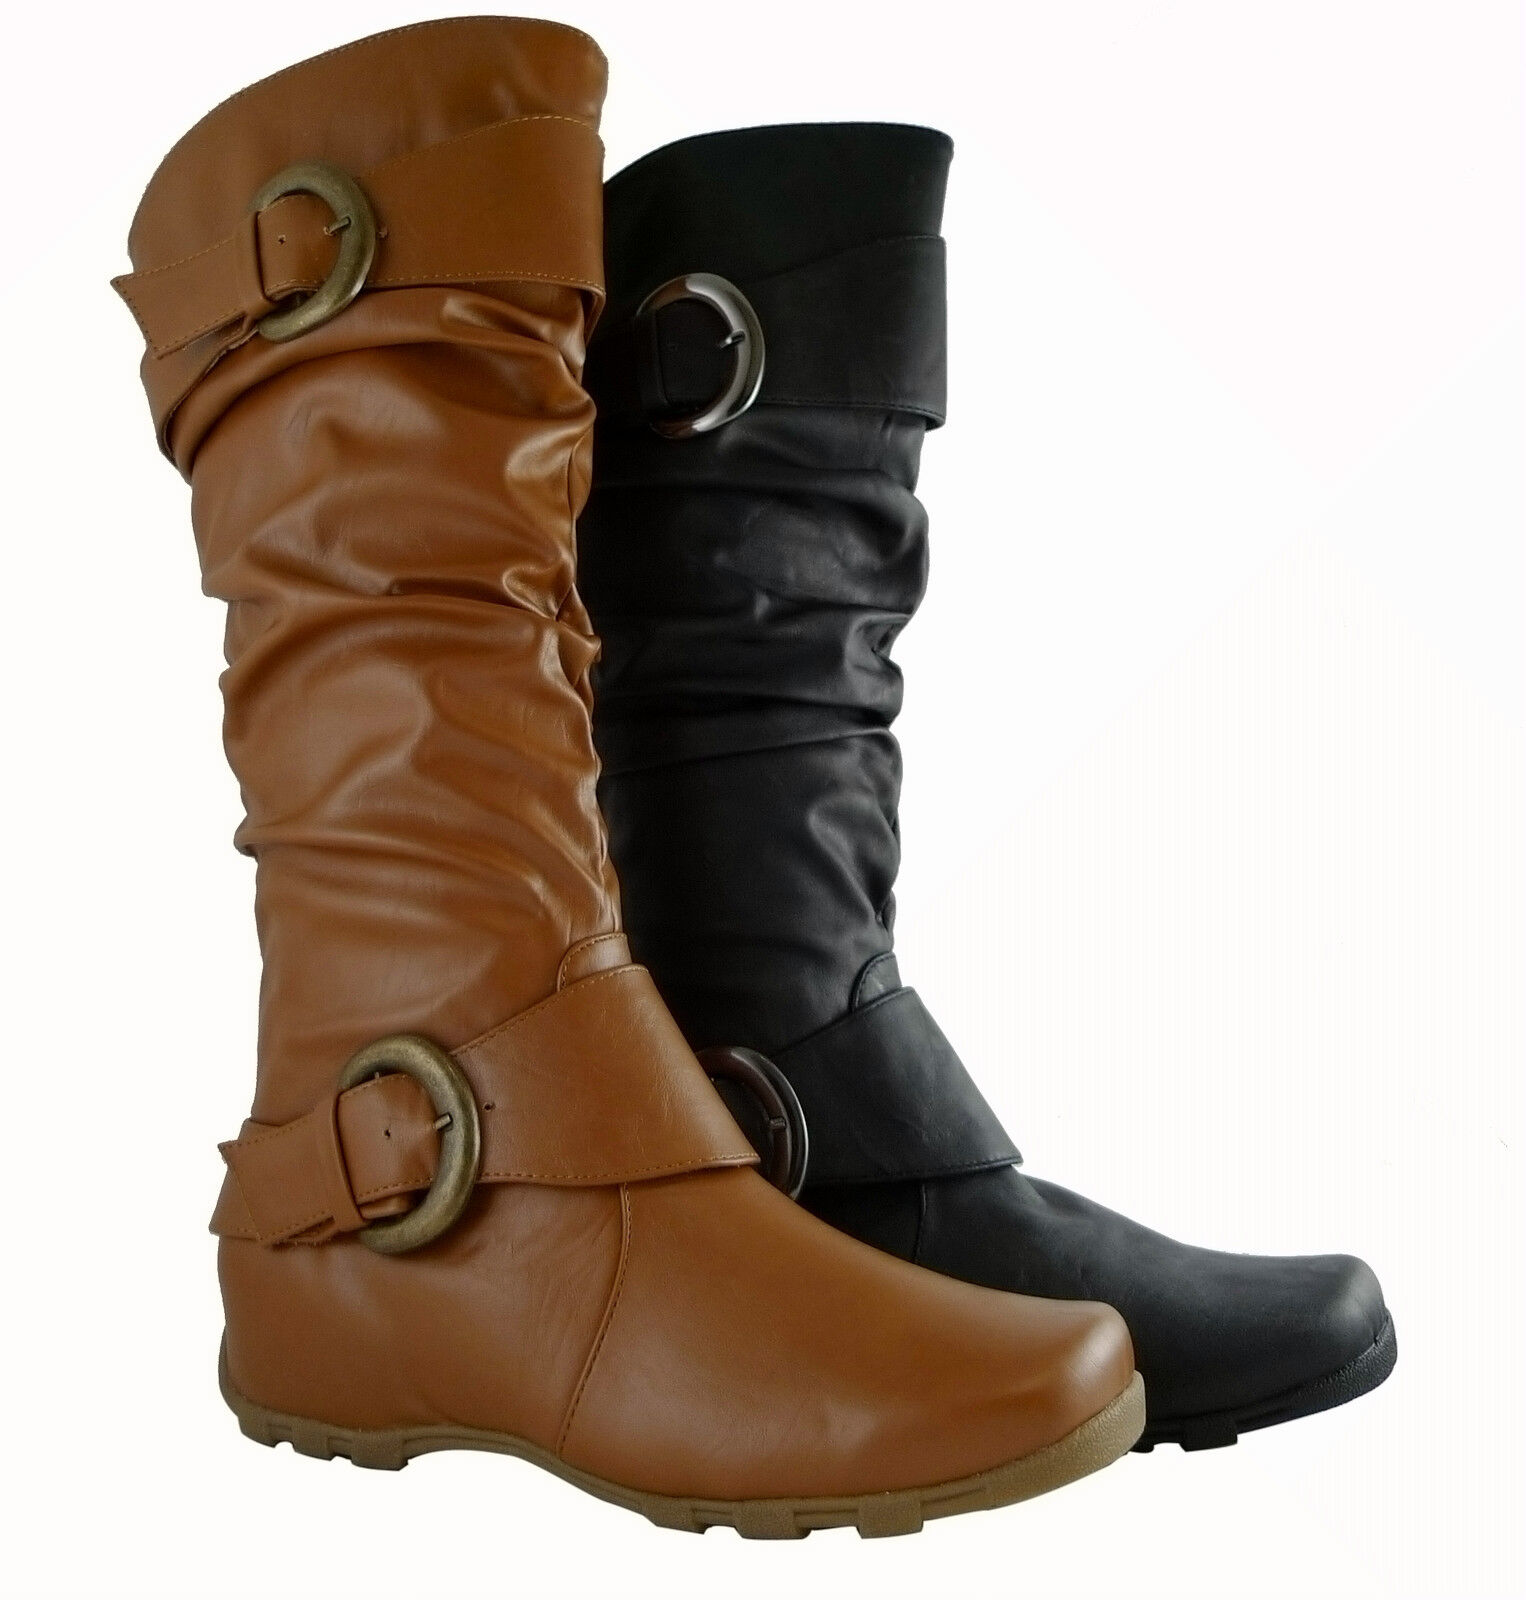 Original Clothing Shoes Amp Accessories Gt Women39s Shoes Gt Boots